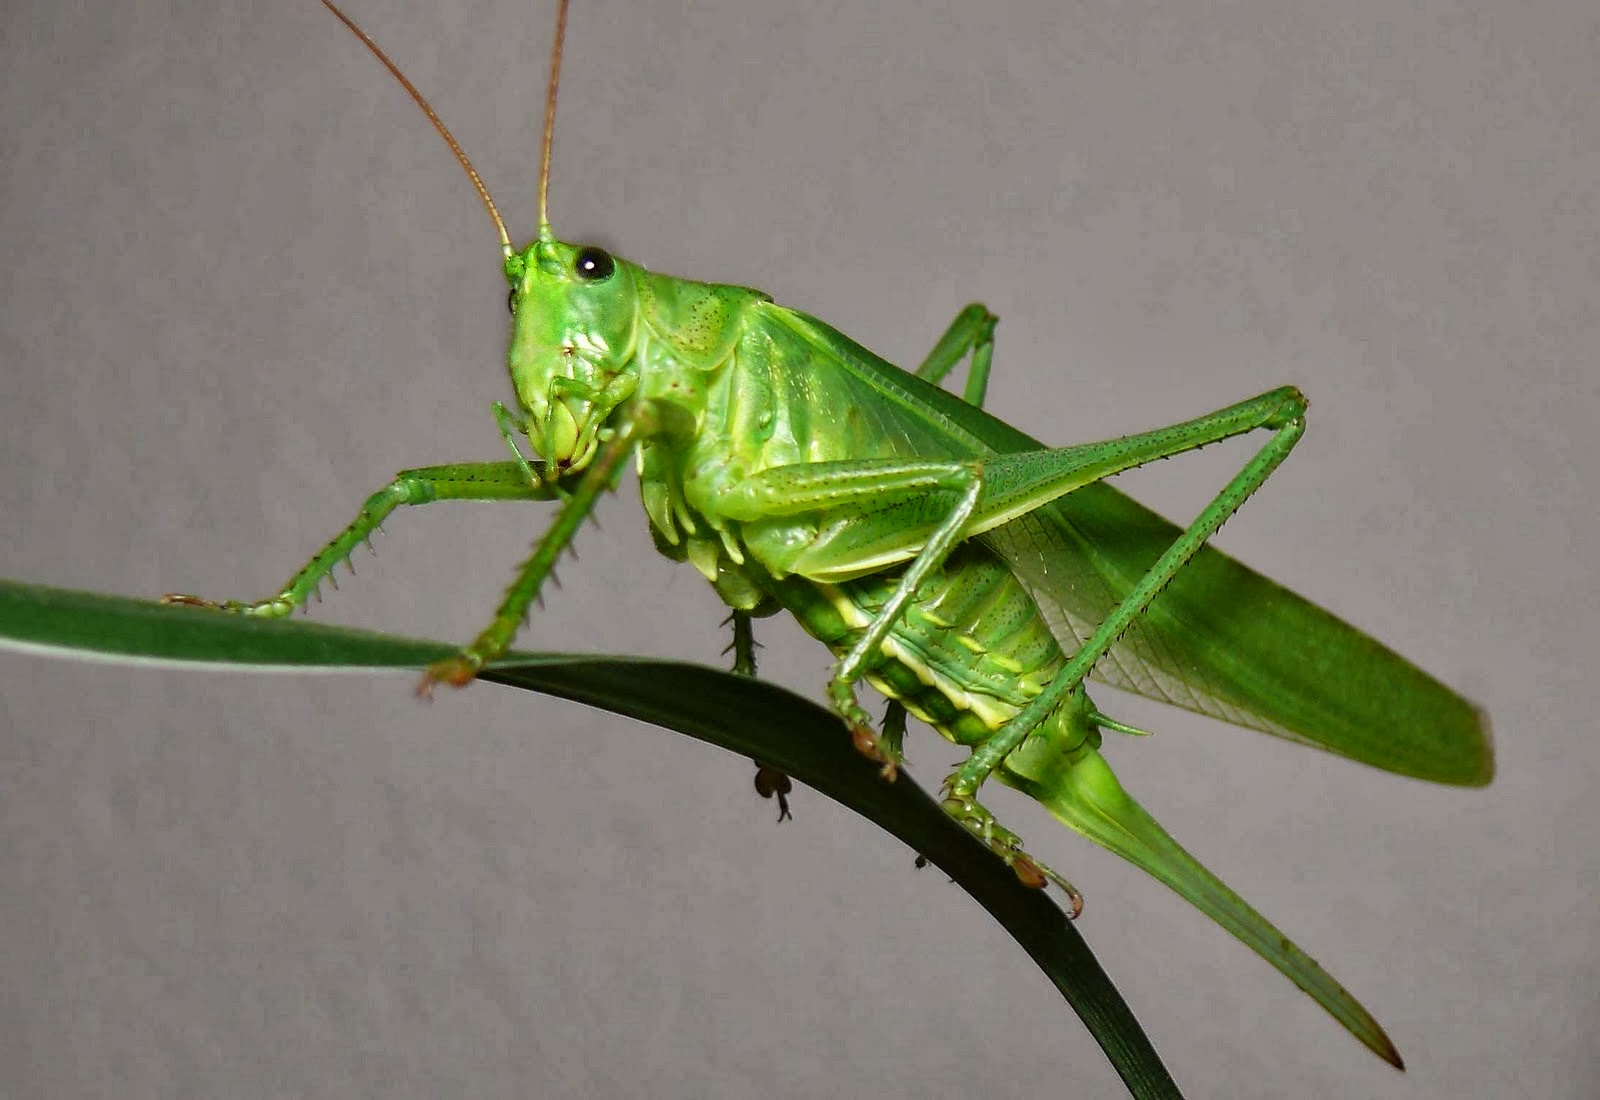 1 any of numerous planteating orthopterous insects Acrididae Tettigoniidae and some related families having the hind legs adapted for leaping and sometimes engaging in migratory flights in which whole regions may be stripped of vegetation